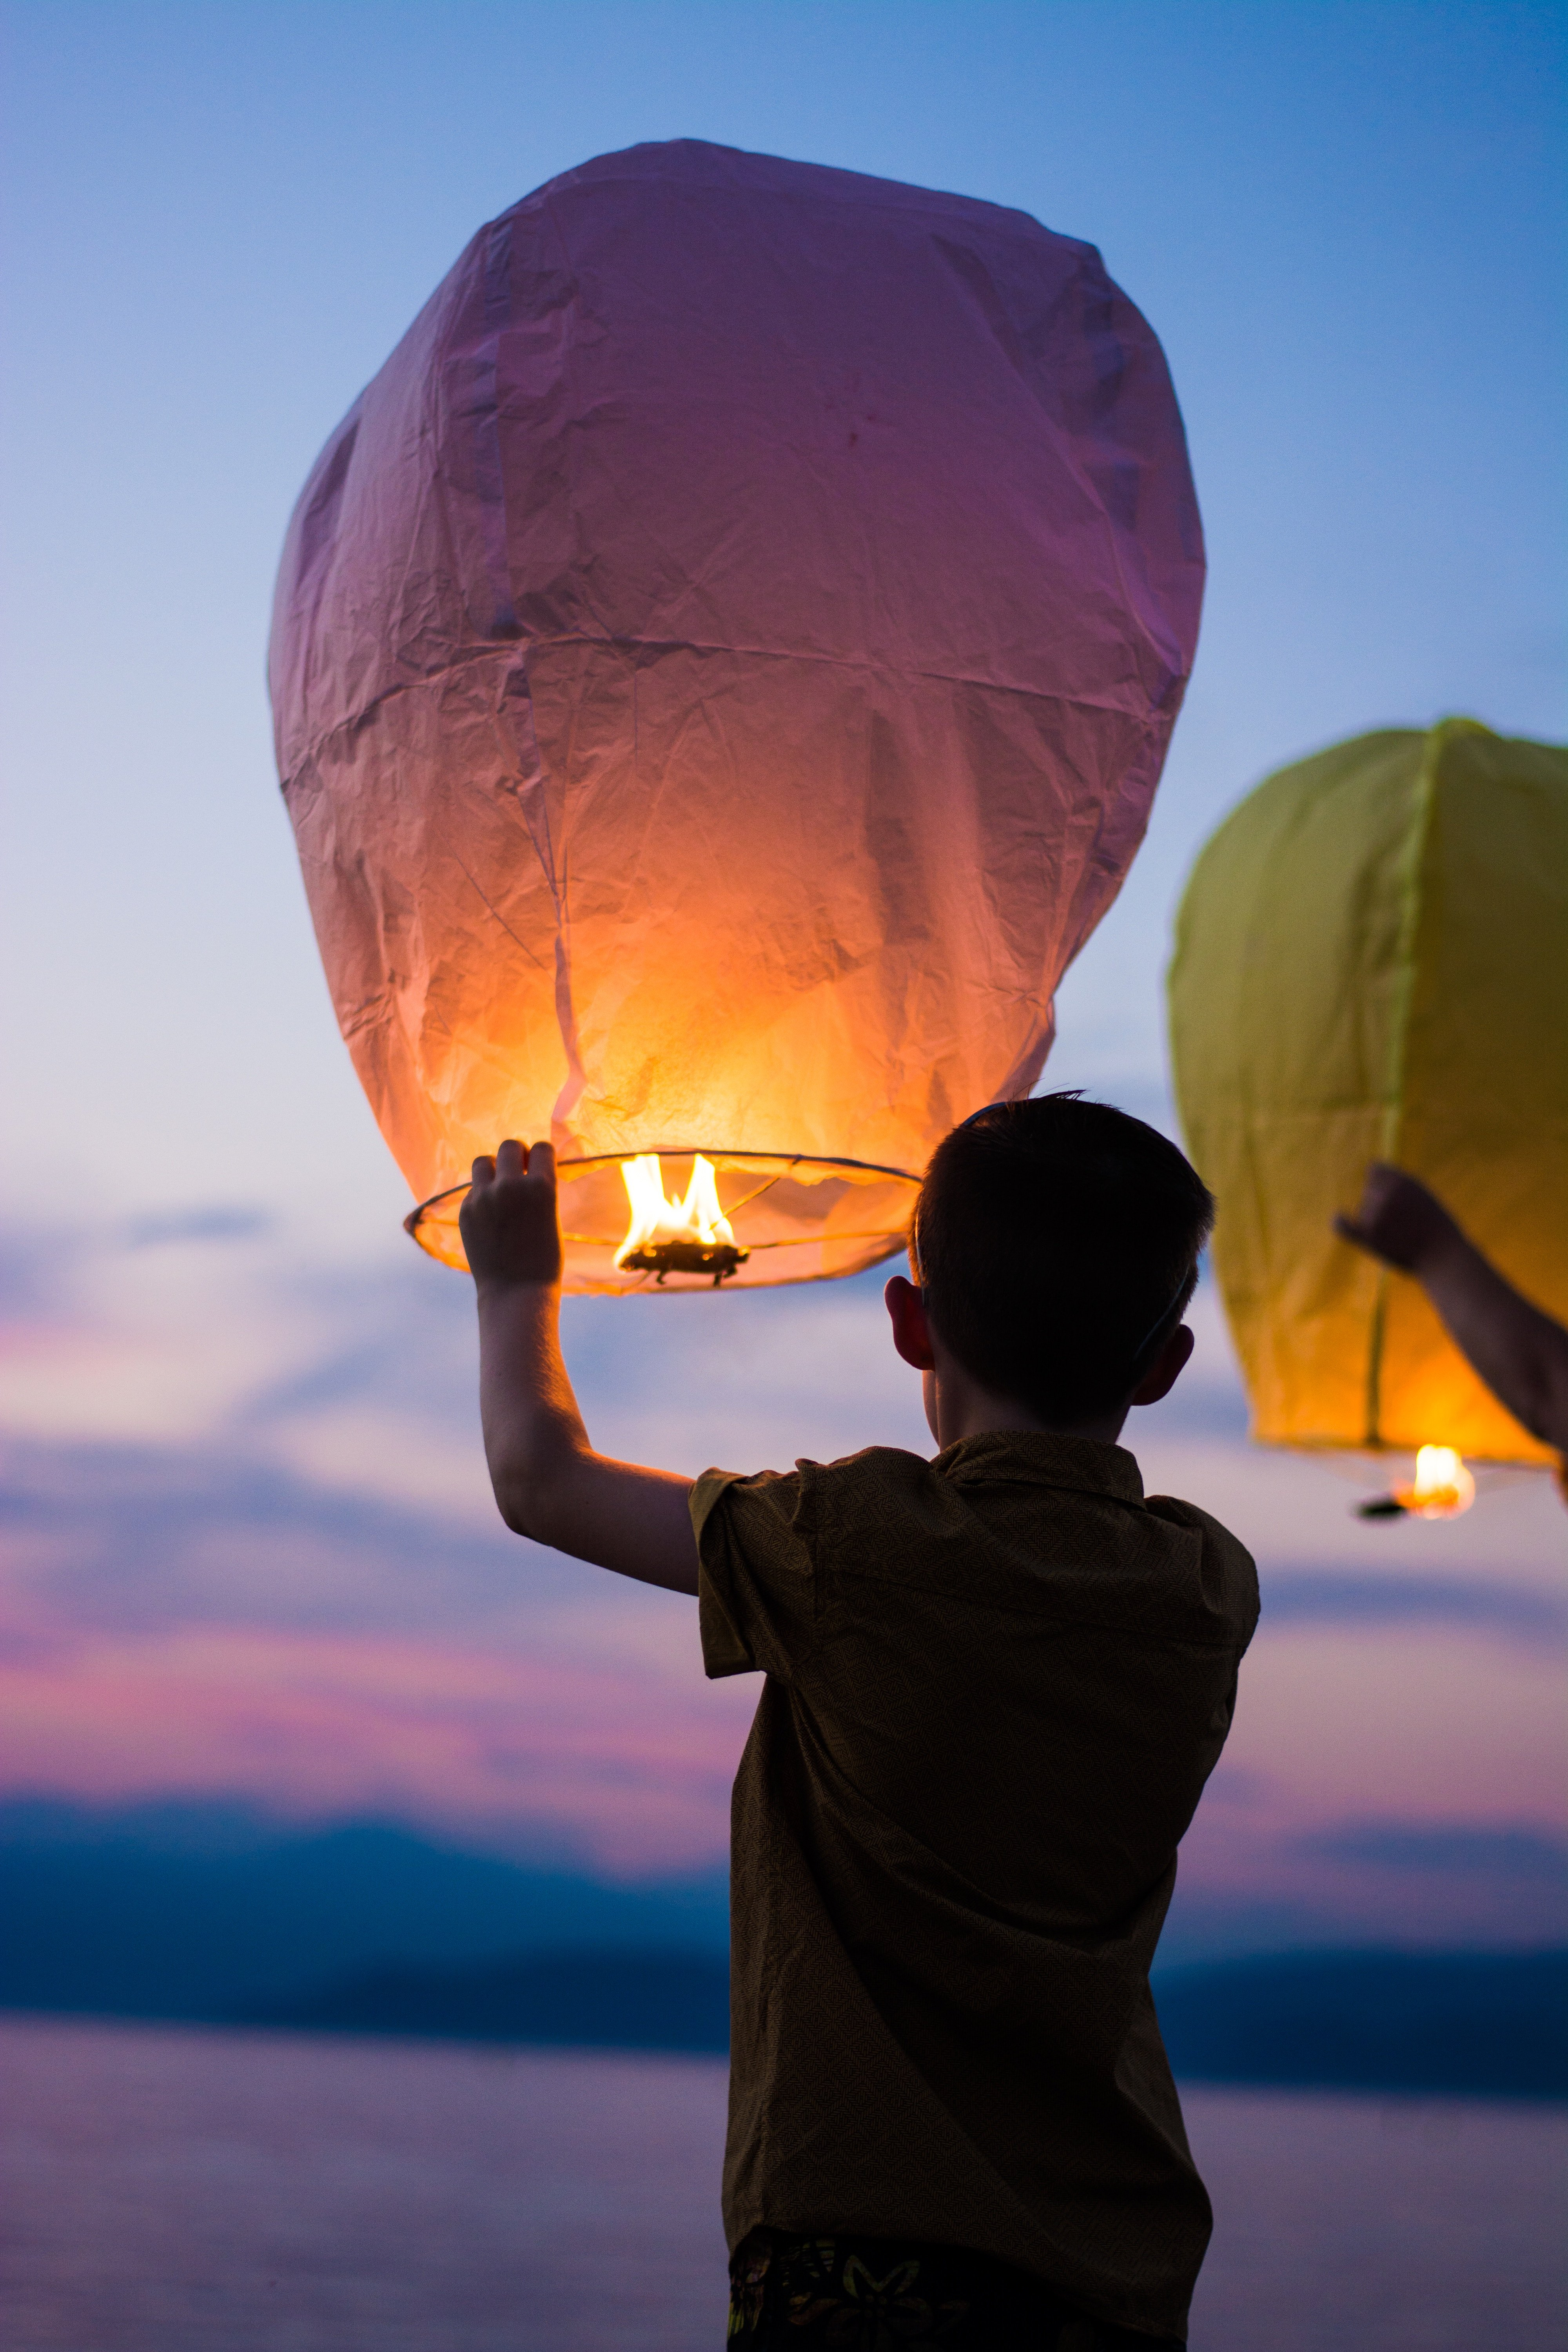 Boy releasing a balloon into the air for his pet